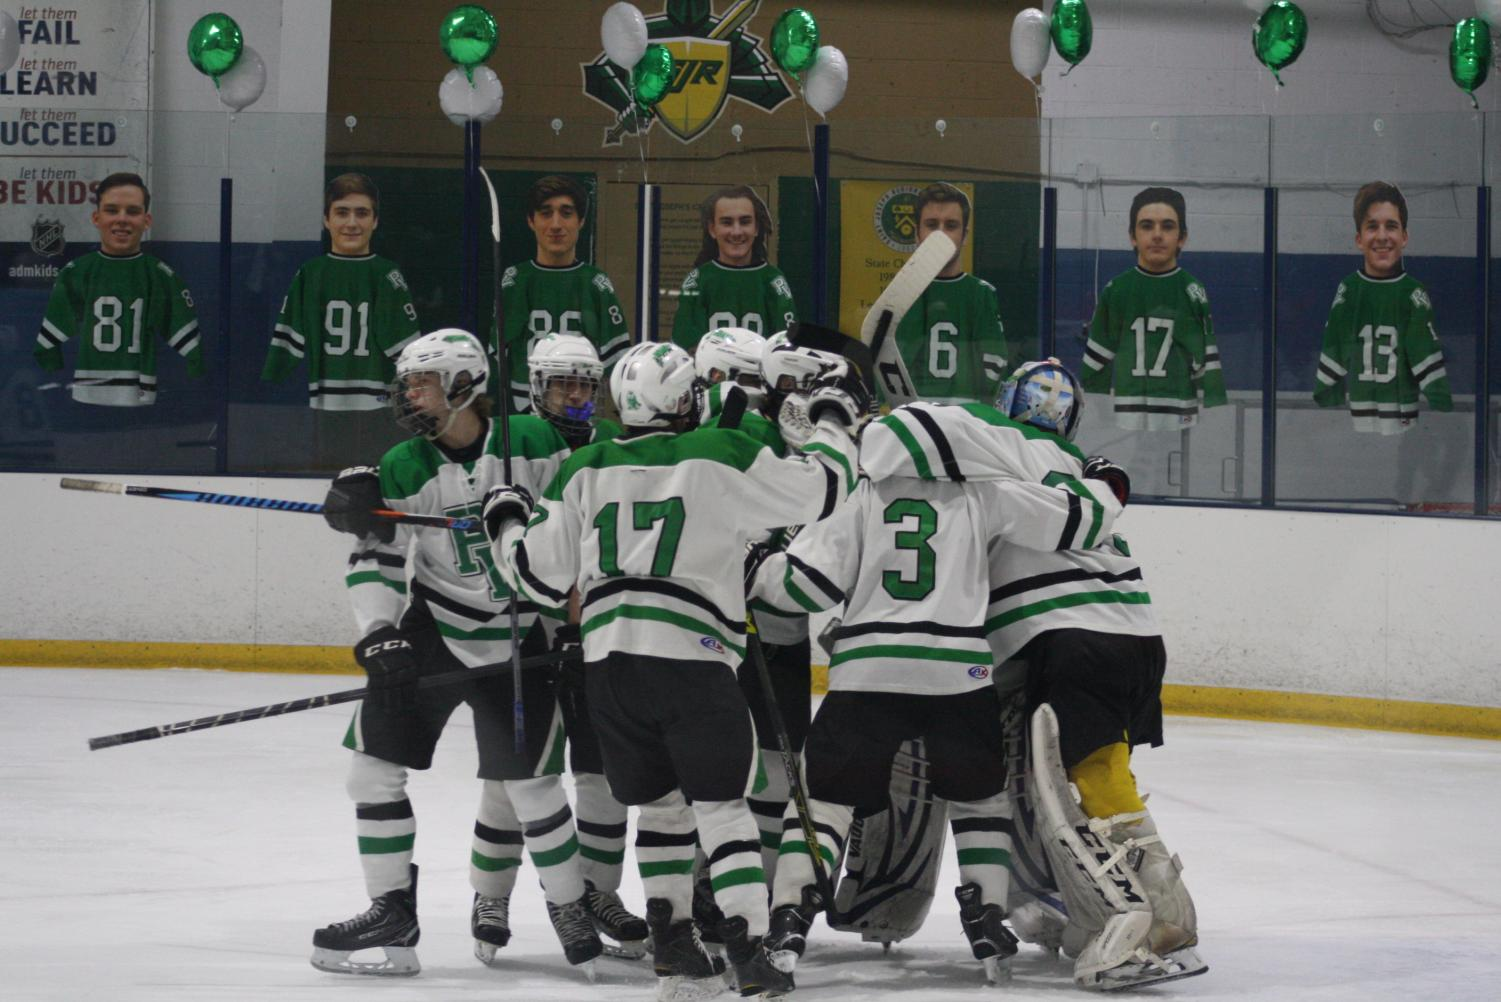 PV/PH/PR hockey players celebrate during a game from this past season. Park Ridge students joined Pascack Hills and Pascack Valley on the team for the first time this past season.